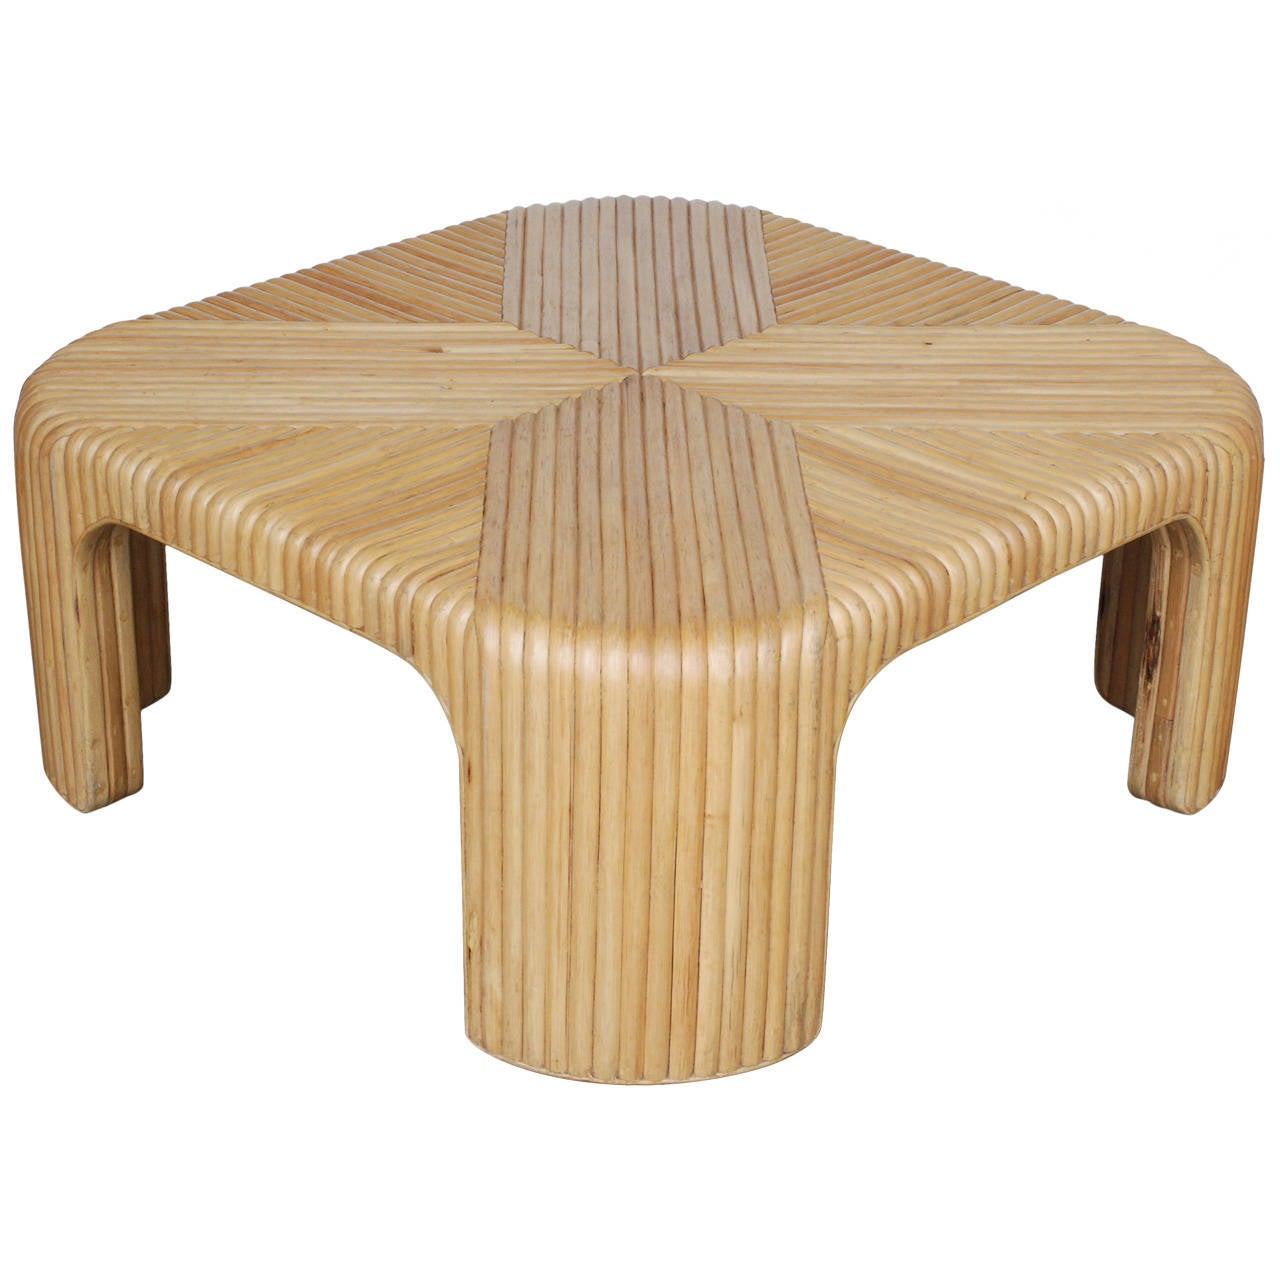 Graphic rattan coffee table for sale at 1stdibs for Rattan coffee table